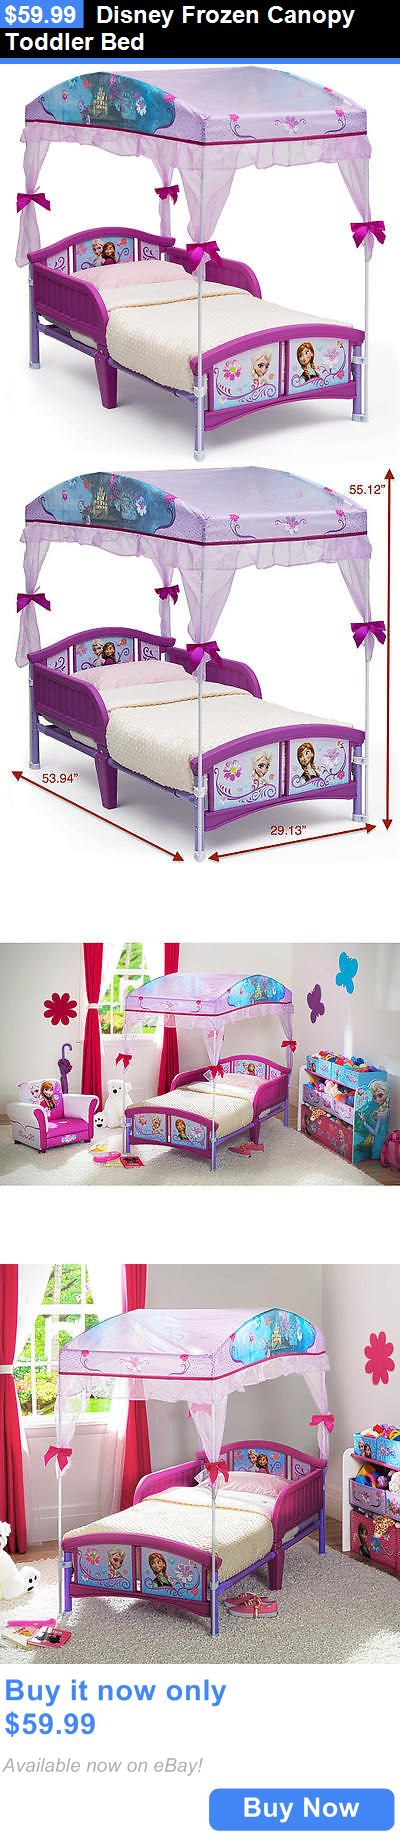 1000 Ideas About Kids Canopy On Pinterest Canopies